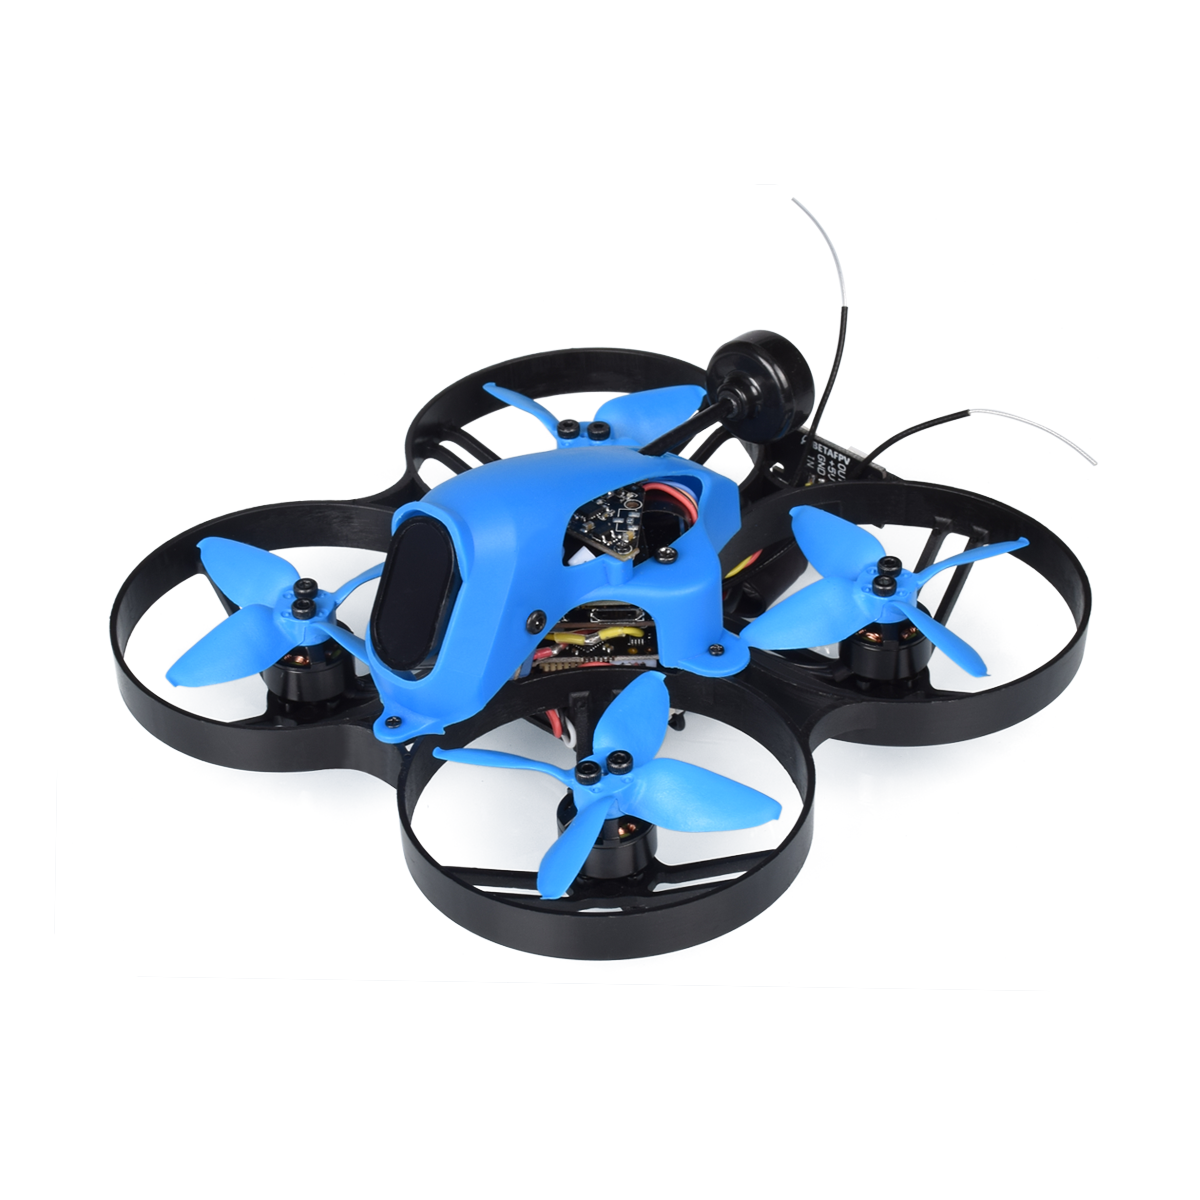 BetaFPV <b>Beta85X 4K</b> Whoop Quadcopter (4S) <b>BNF FRSKY</b>